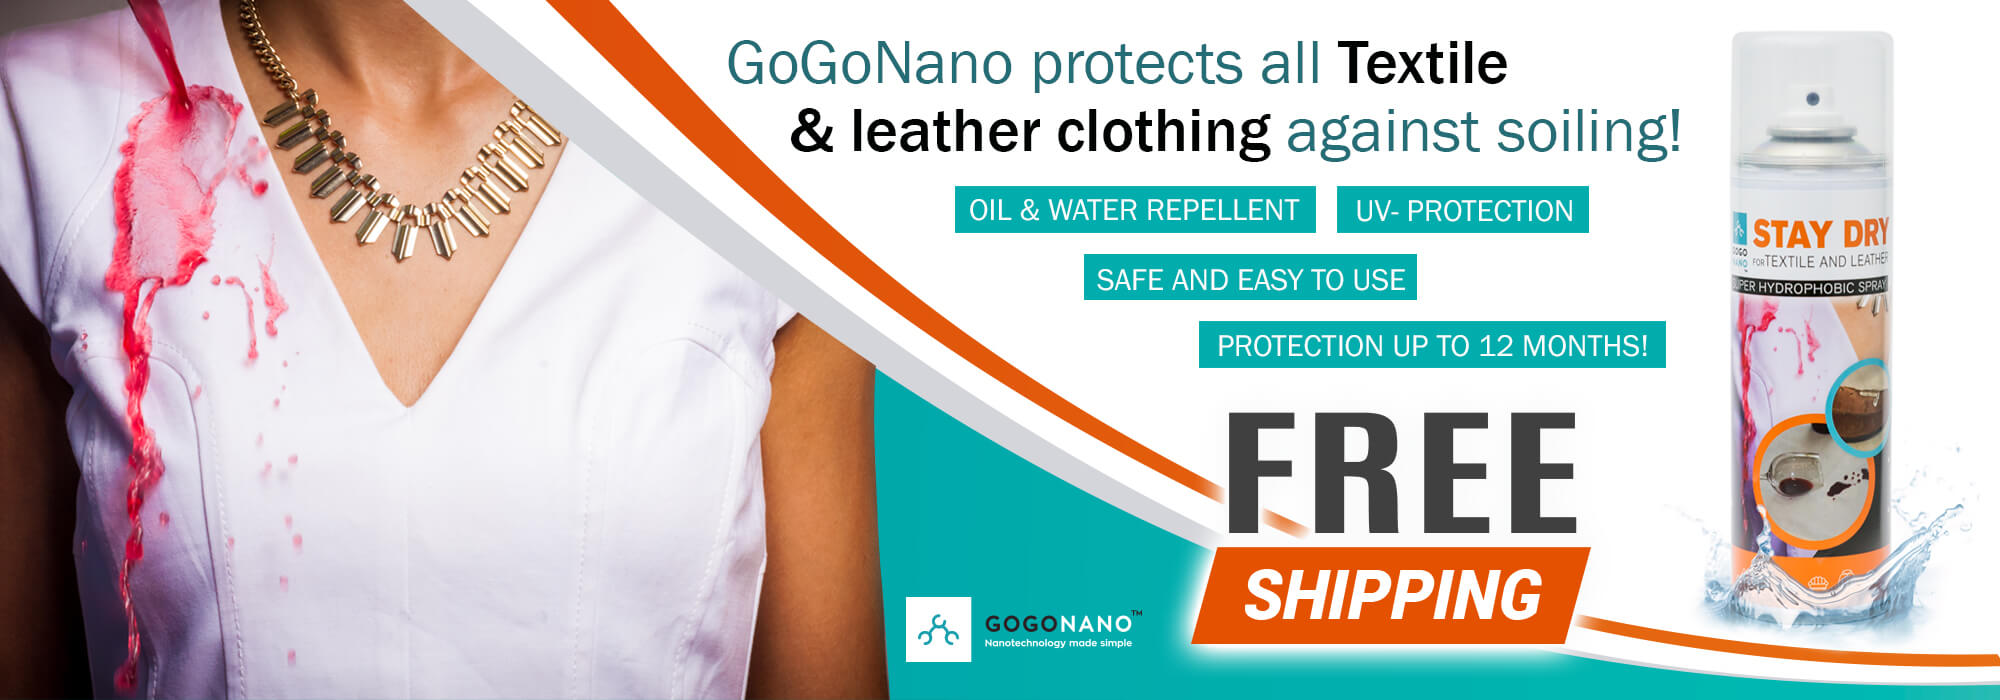 Waterproof Spray GoGoNano for textile and leather